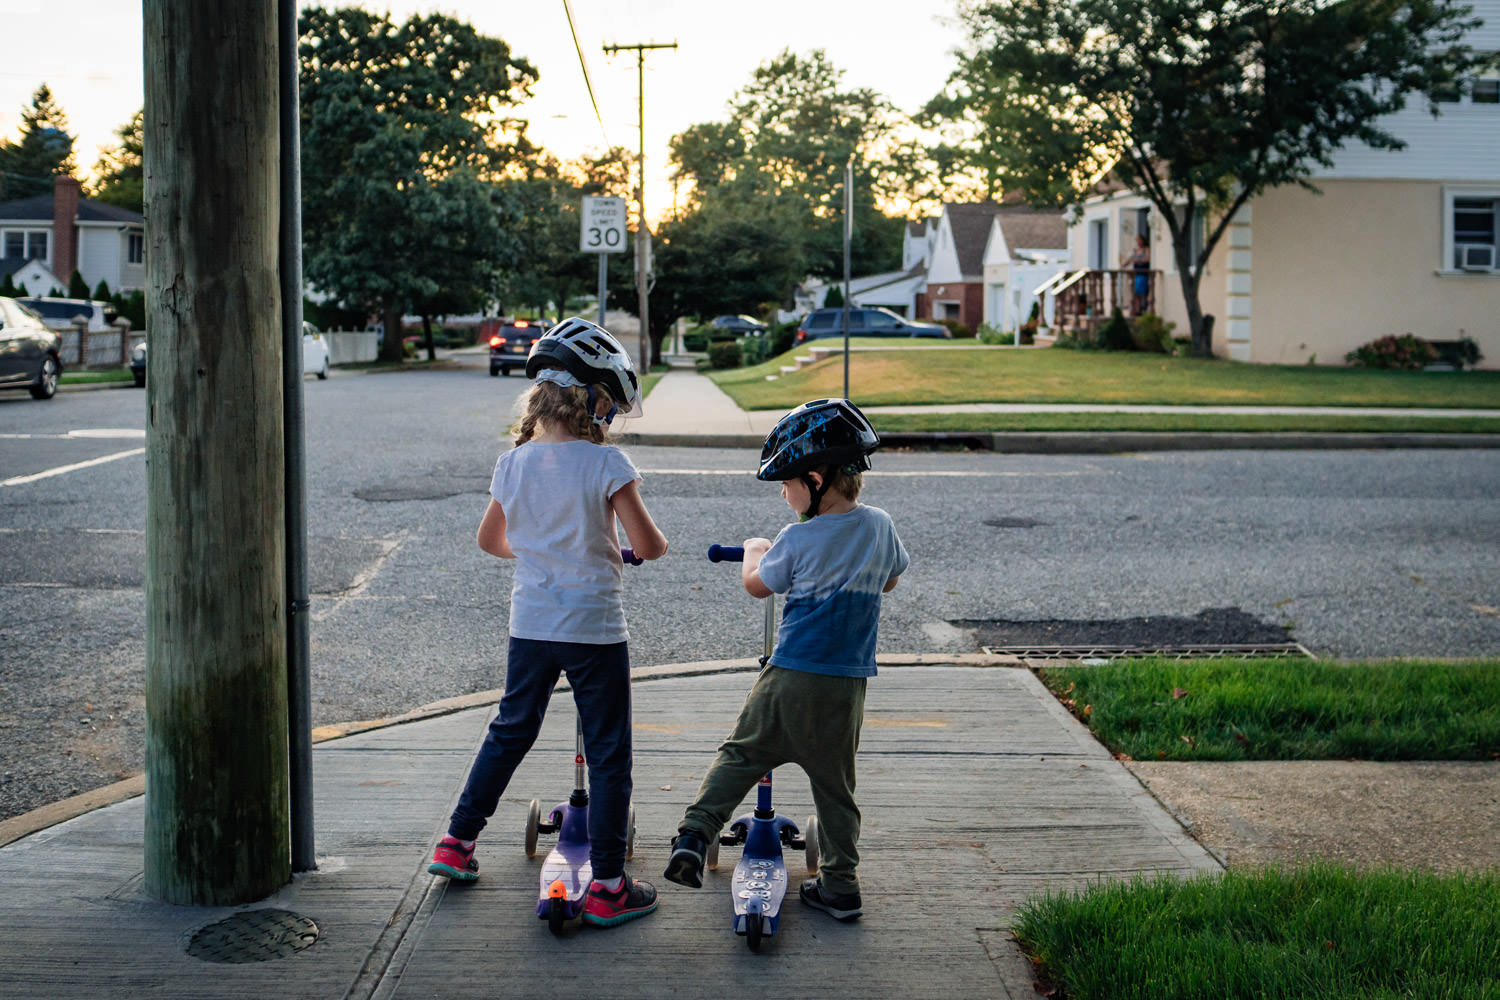 A boy and a girl wait at a street corner with their scooters.